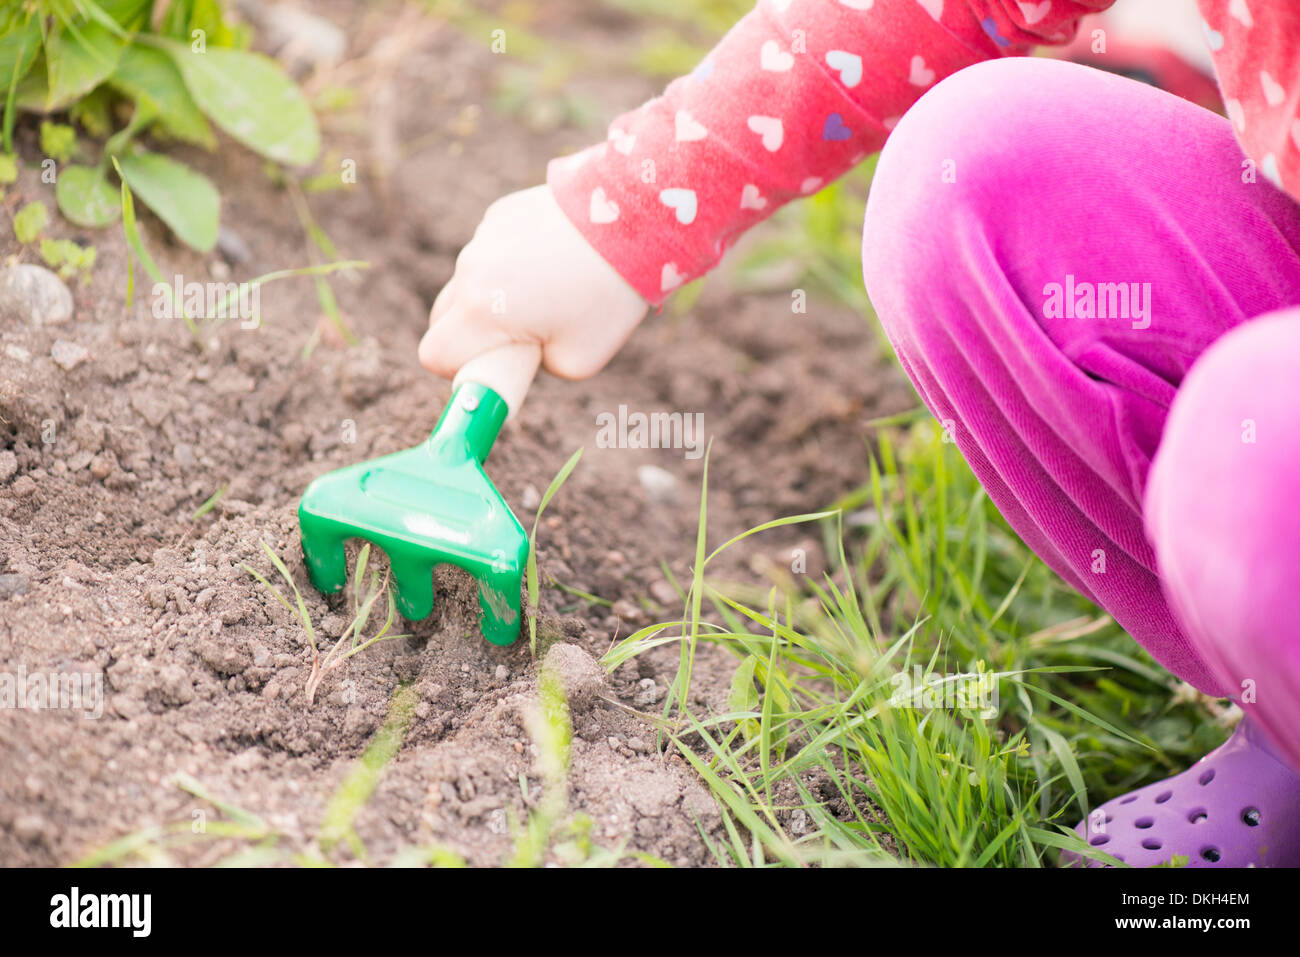 Close up of young child in garden helping with plants and flowers, digging in the soil. - Stock Image